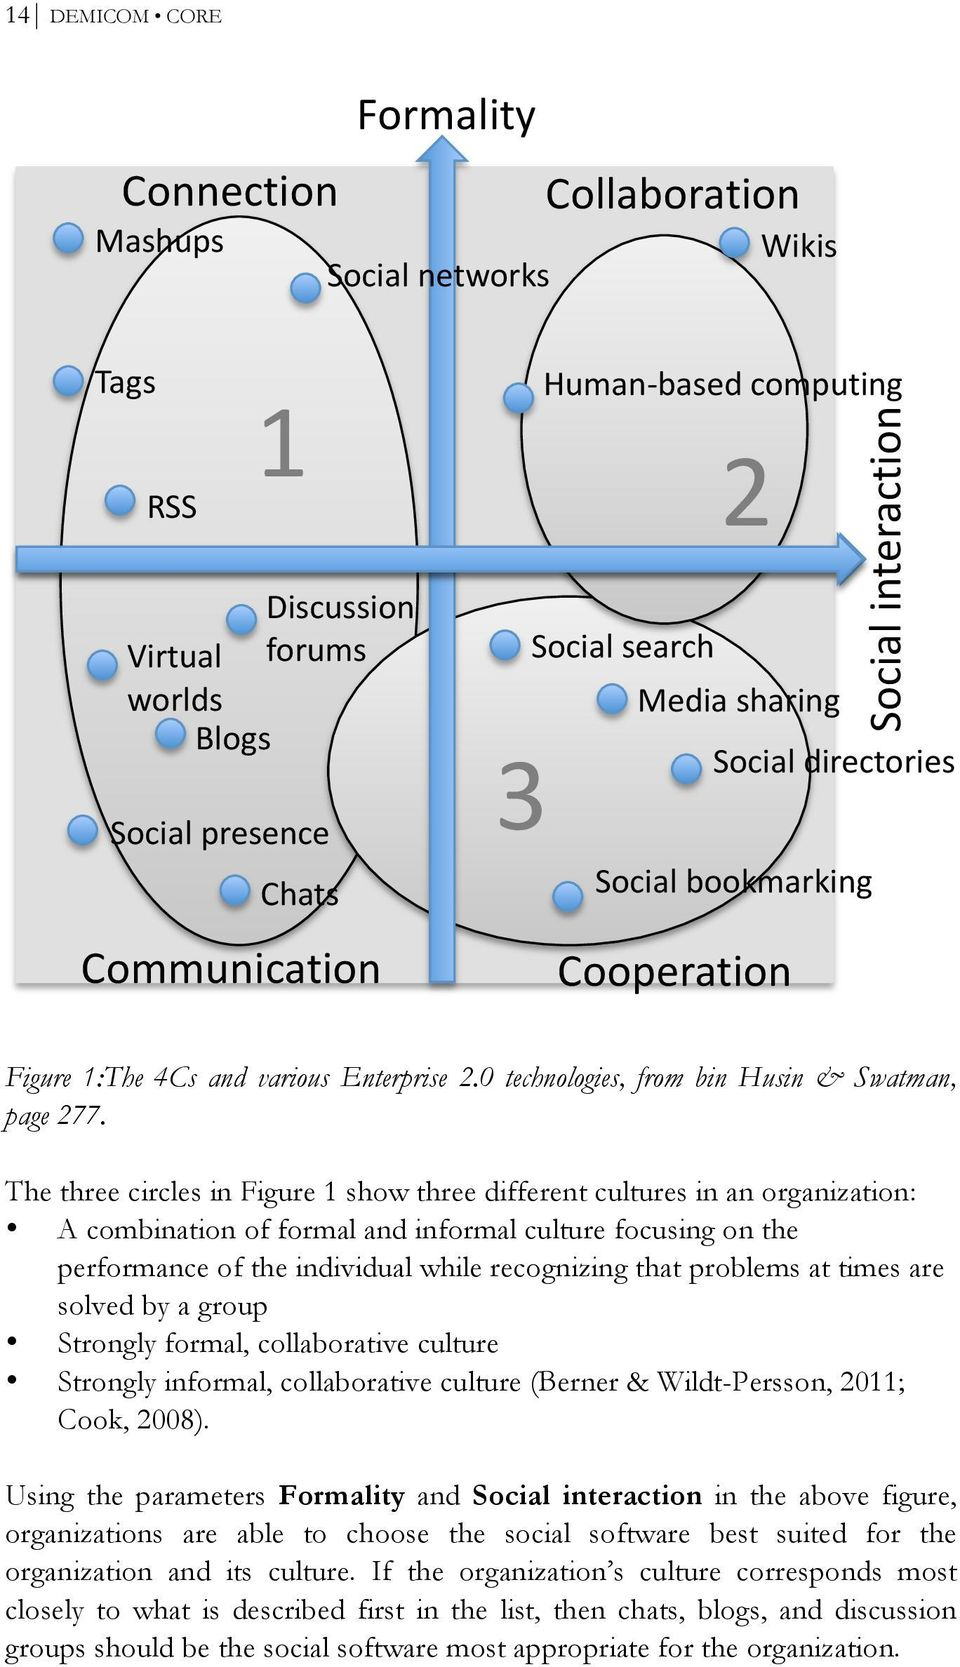 The three circles in Figure 1 show three different cultures in an organization: A combination of formal and informal culture focusing on the performance of the individual while recognizing that